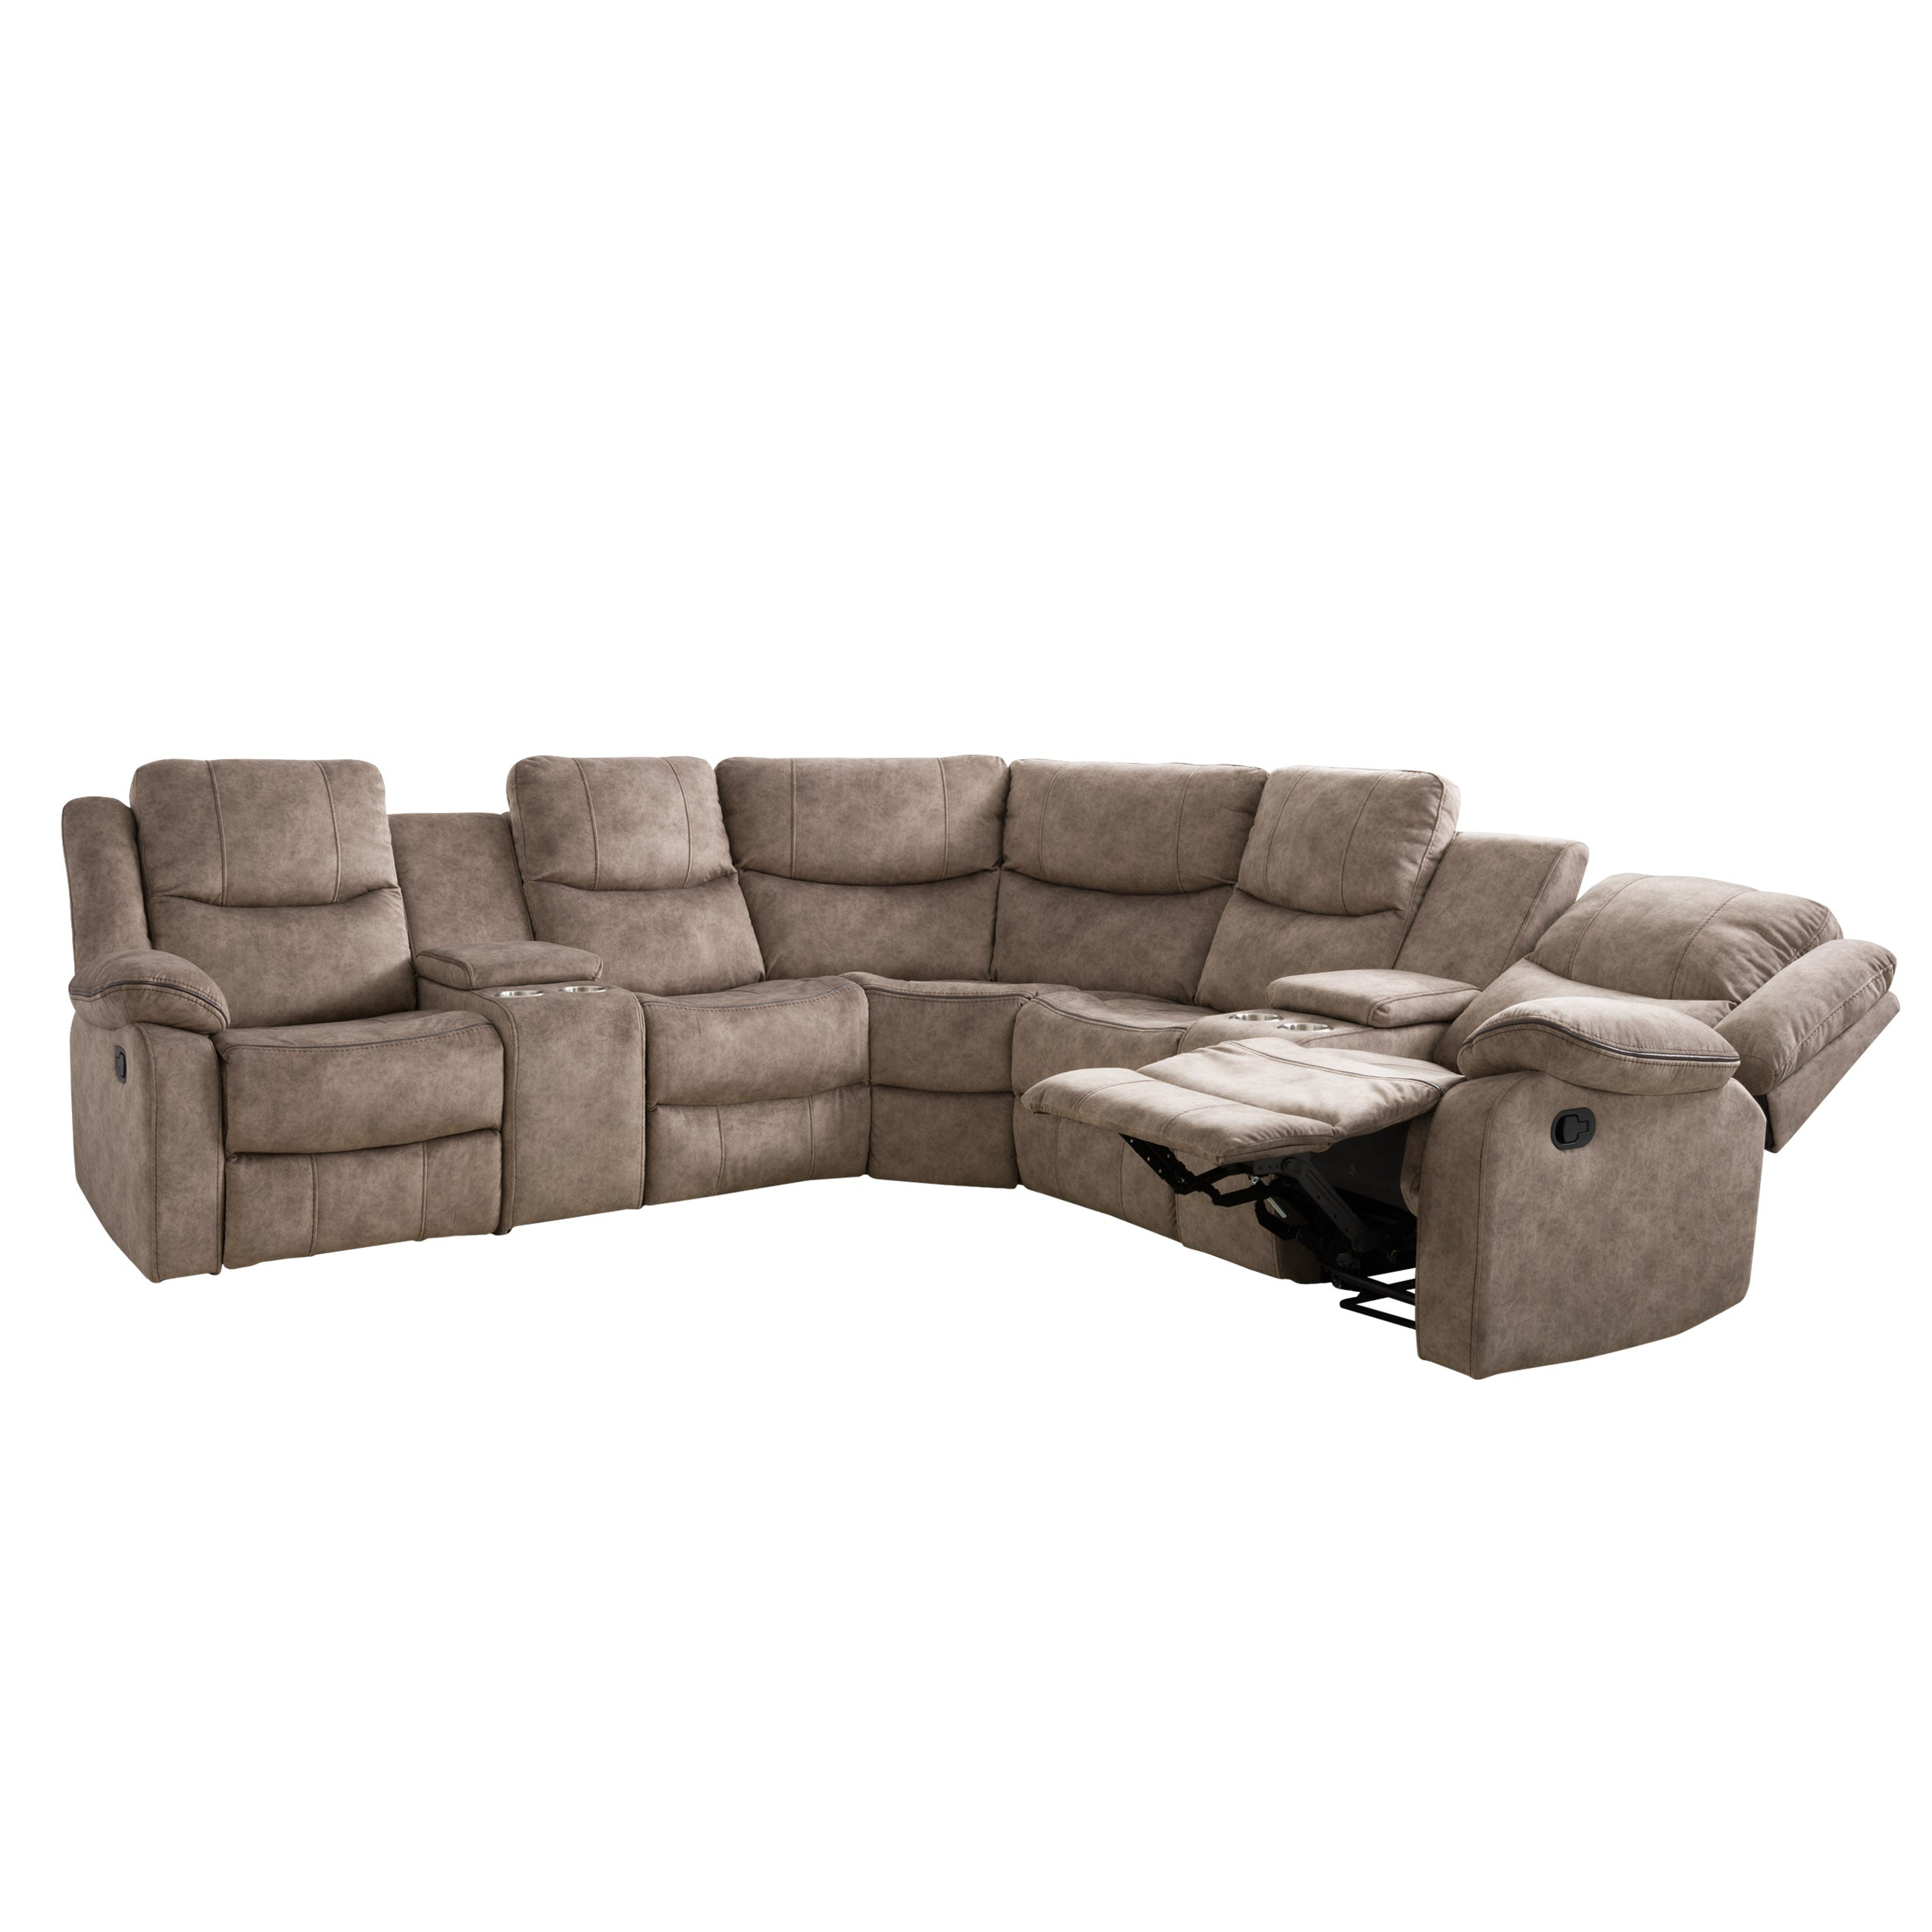 7pc Curved Modular Reclining Sofa Sectional With Storage Consoles